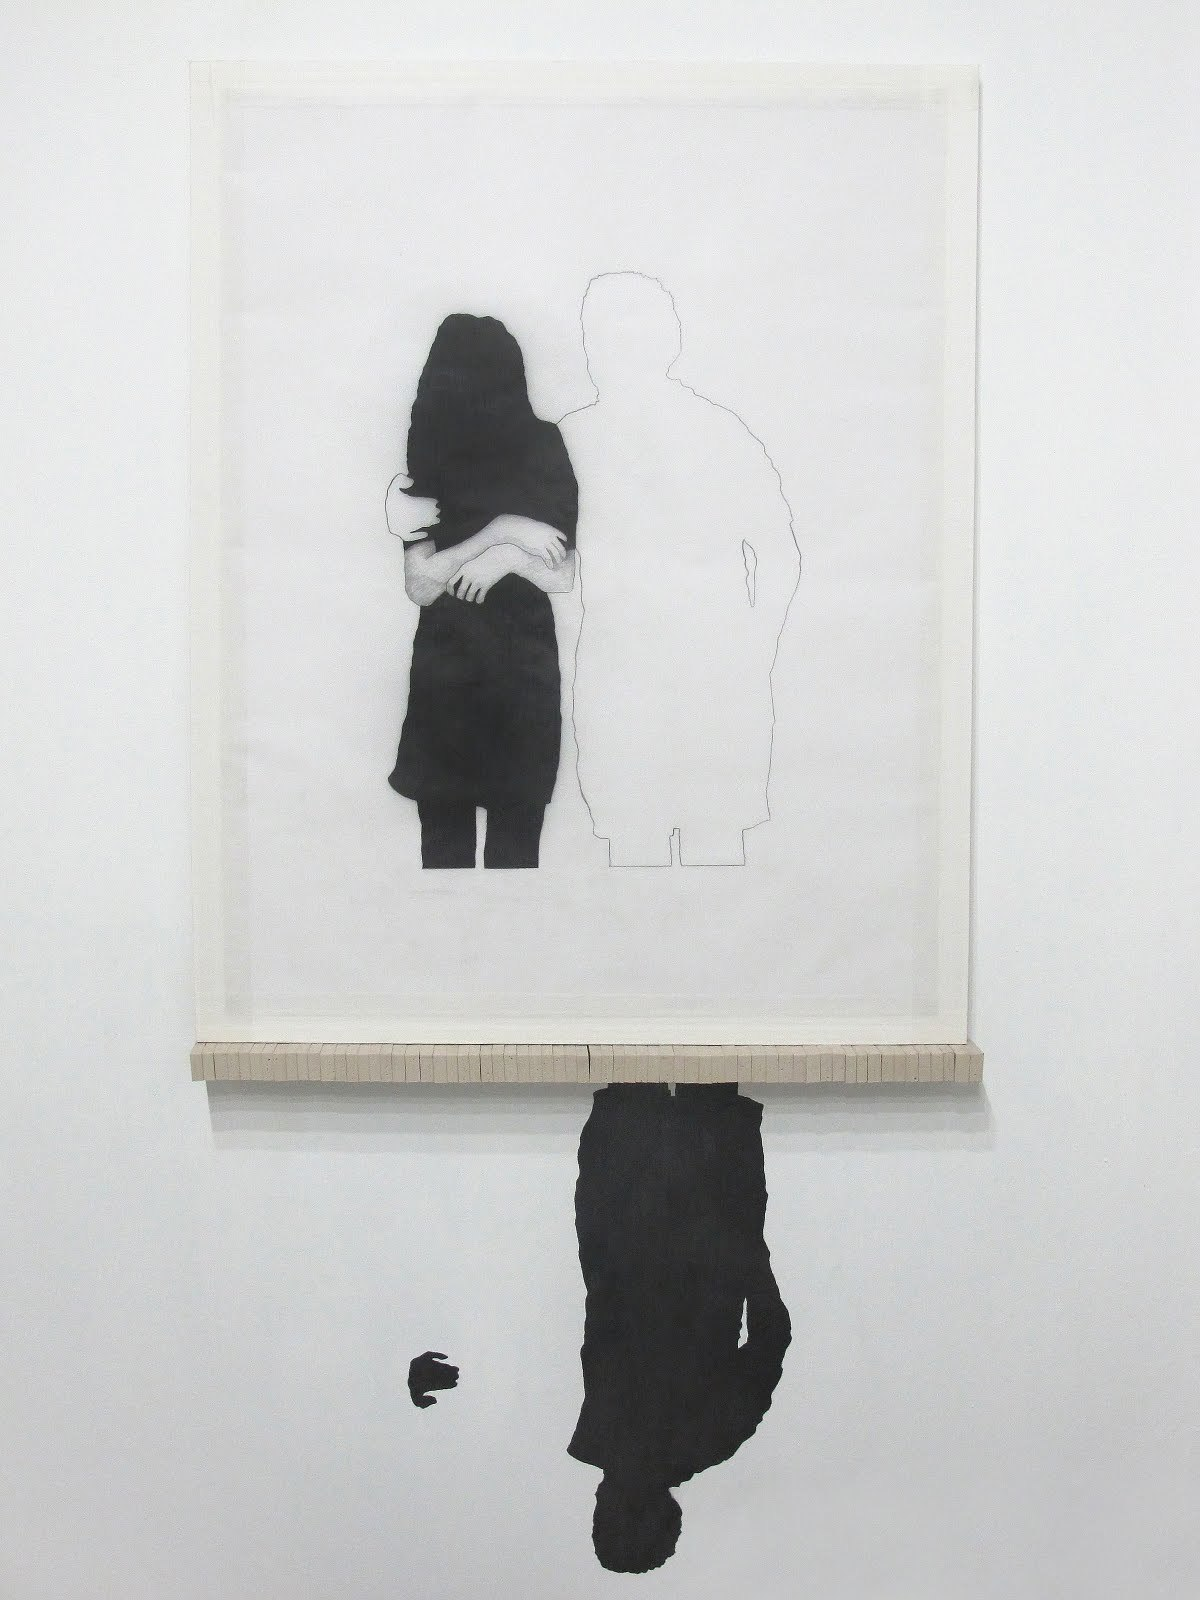 contemporary-drawing:  Diana Shpungin, Under Taken, 2011, drawing installation, 26.5 x 56 inchespencil on paper, pencil on wall, archival mounting board, medical tape, erasers.